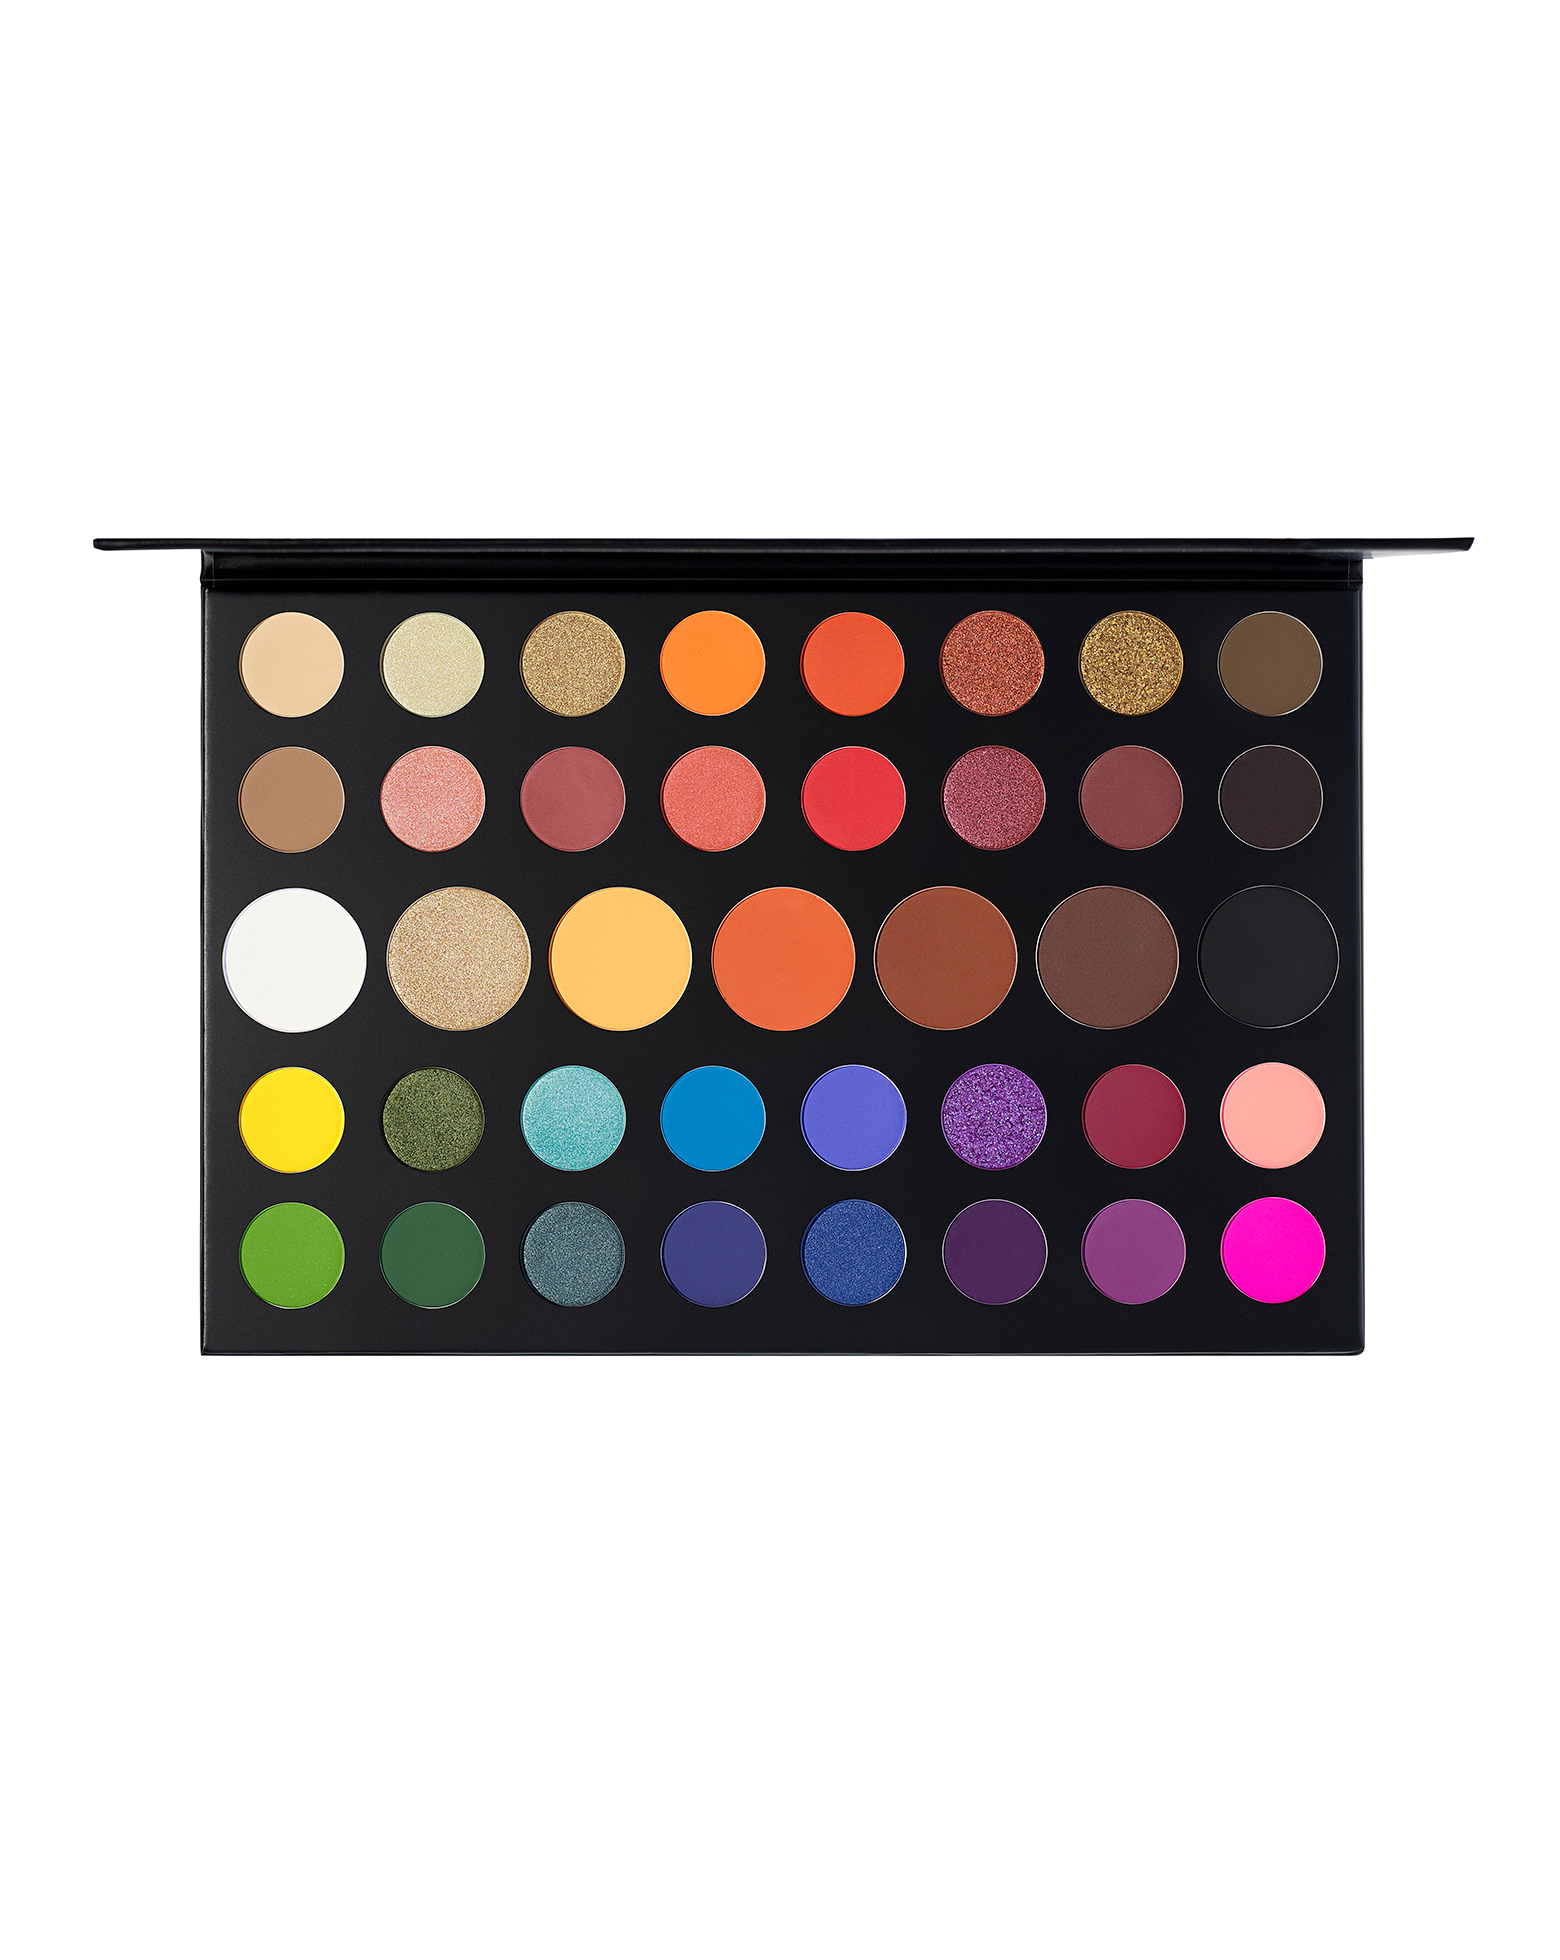 Morphe The James Charles Artistry Palette Cult Beauty